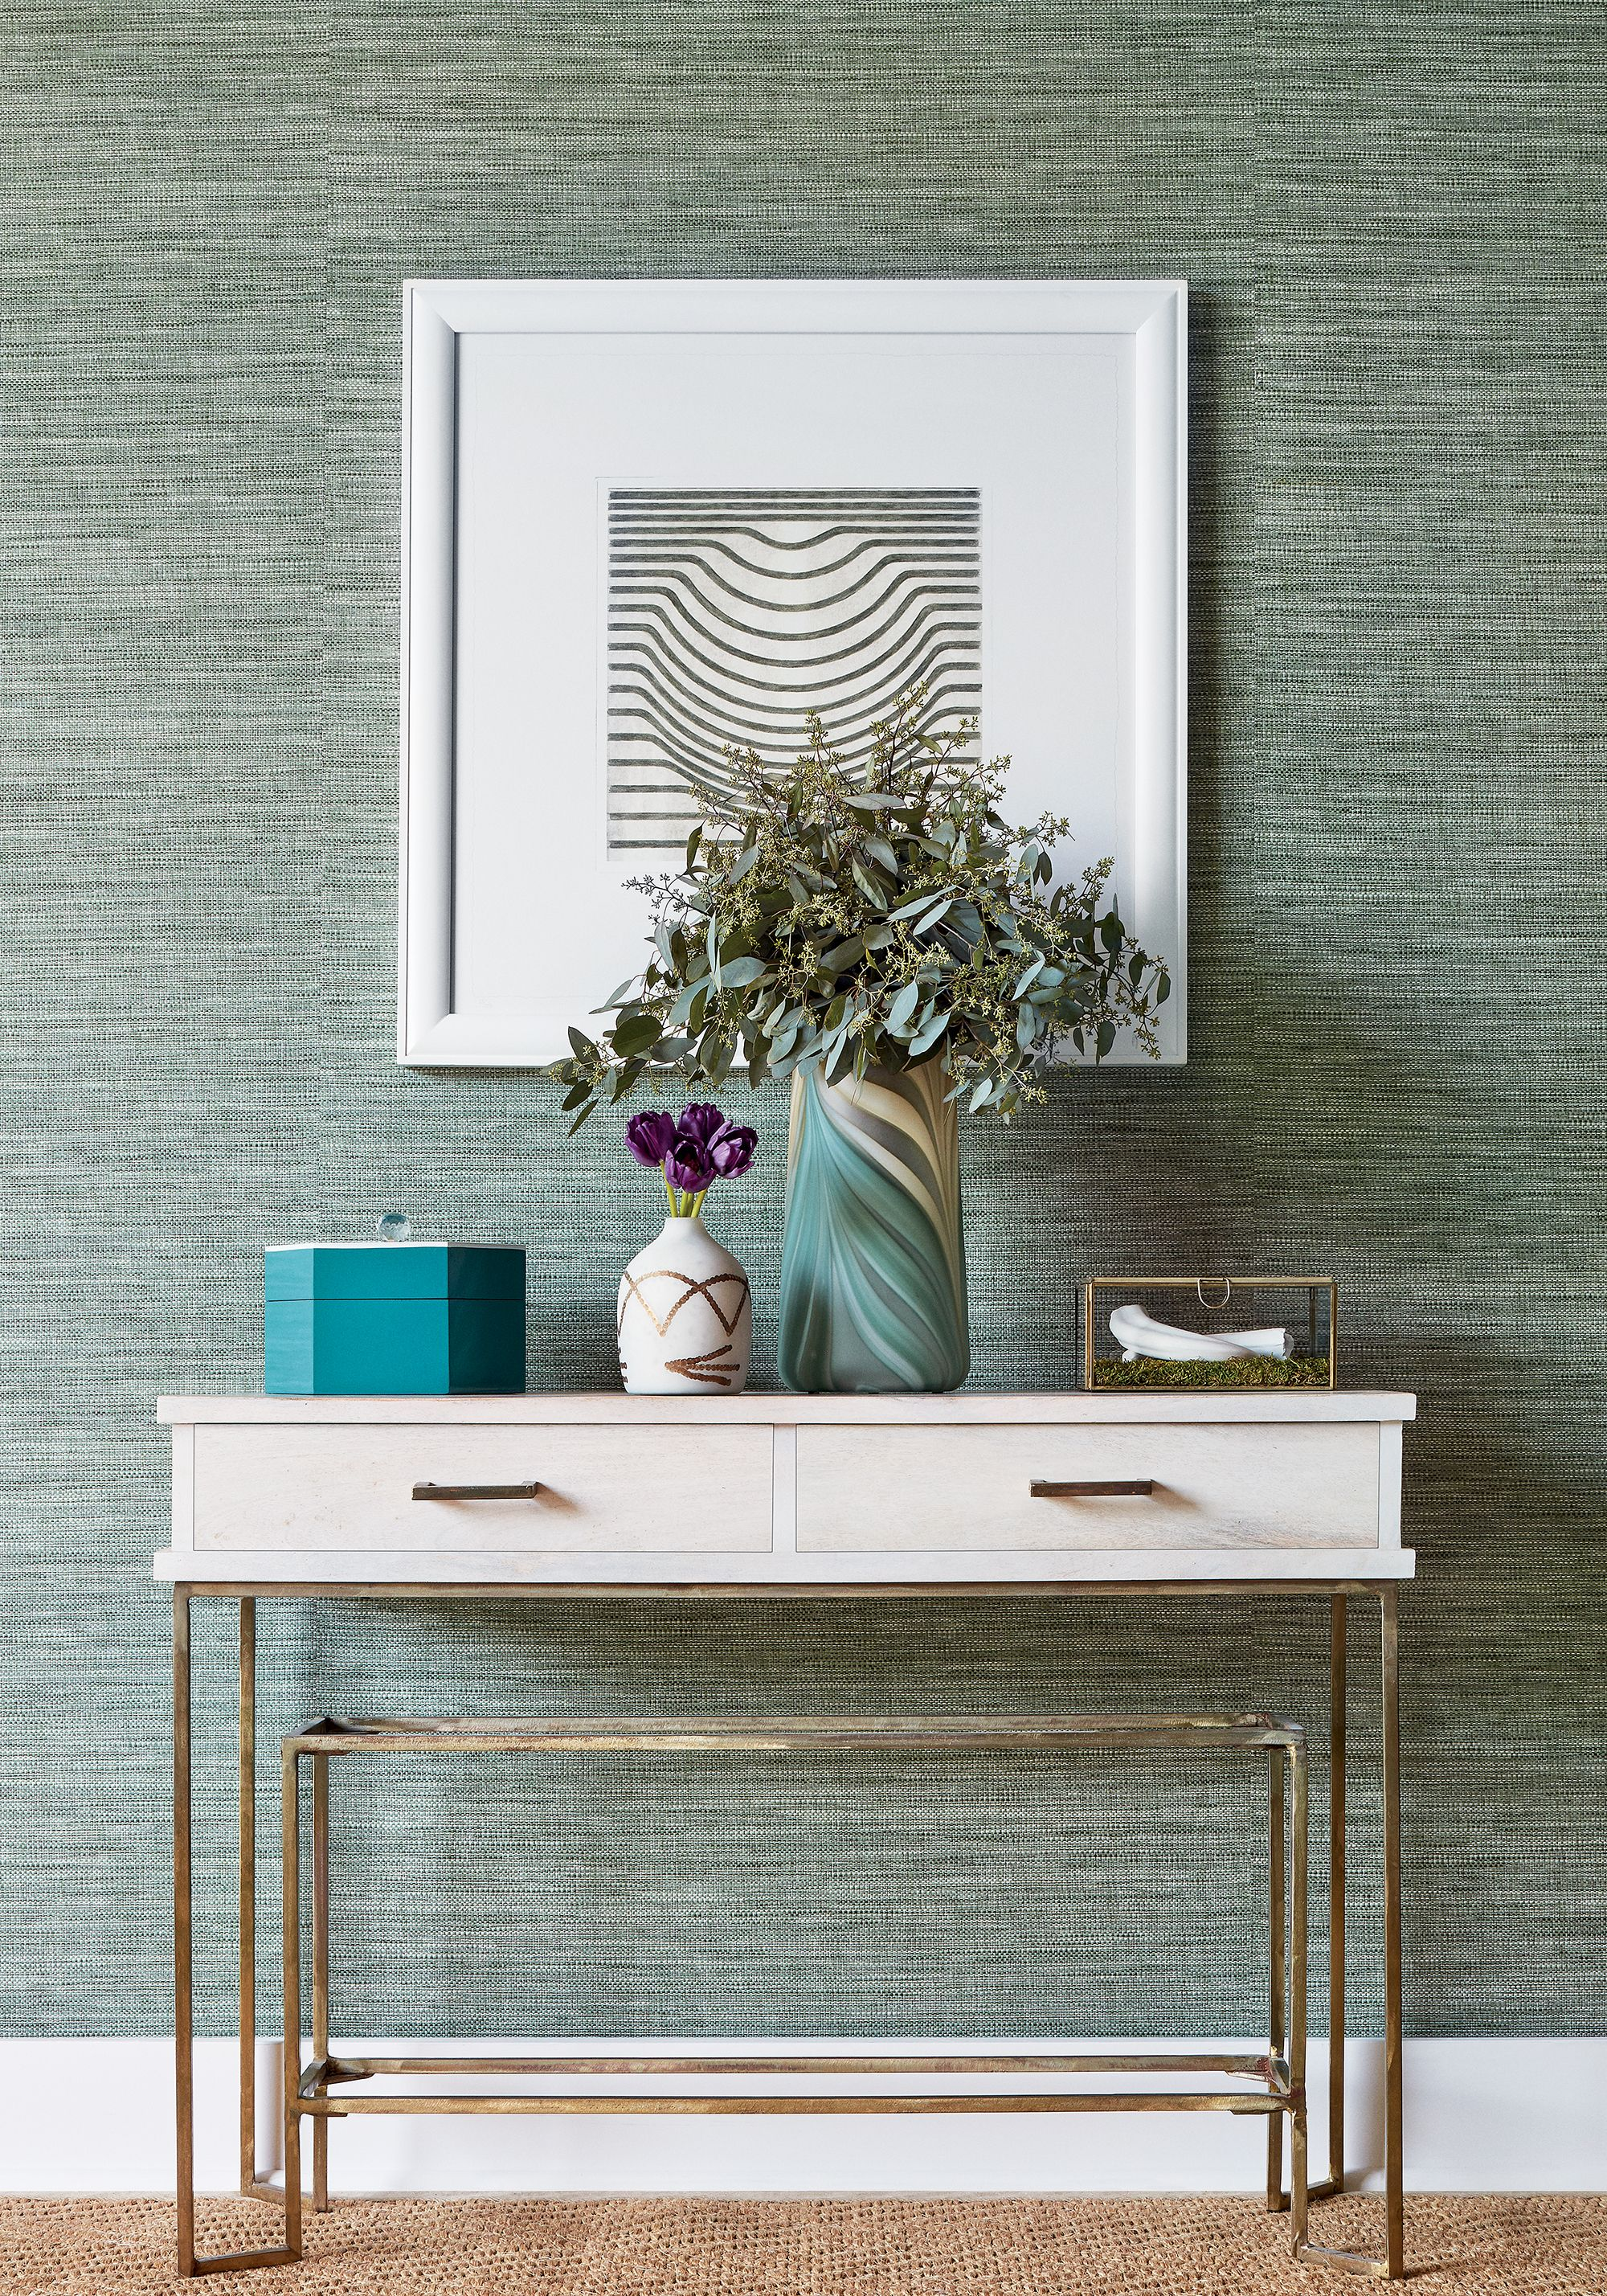 Calistoga From Grasscloth Resource 5 Collection Grasscloth Wallpaper Dining Room Grasscloth Grasscloth Wallpaper